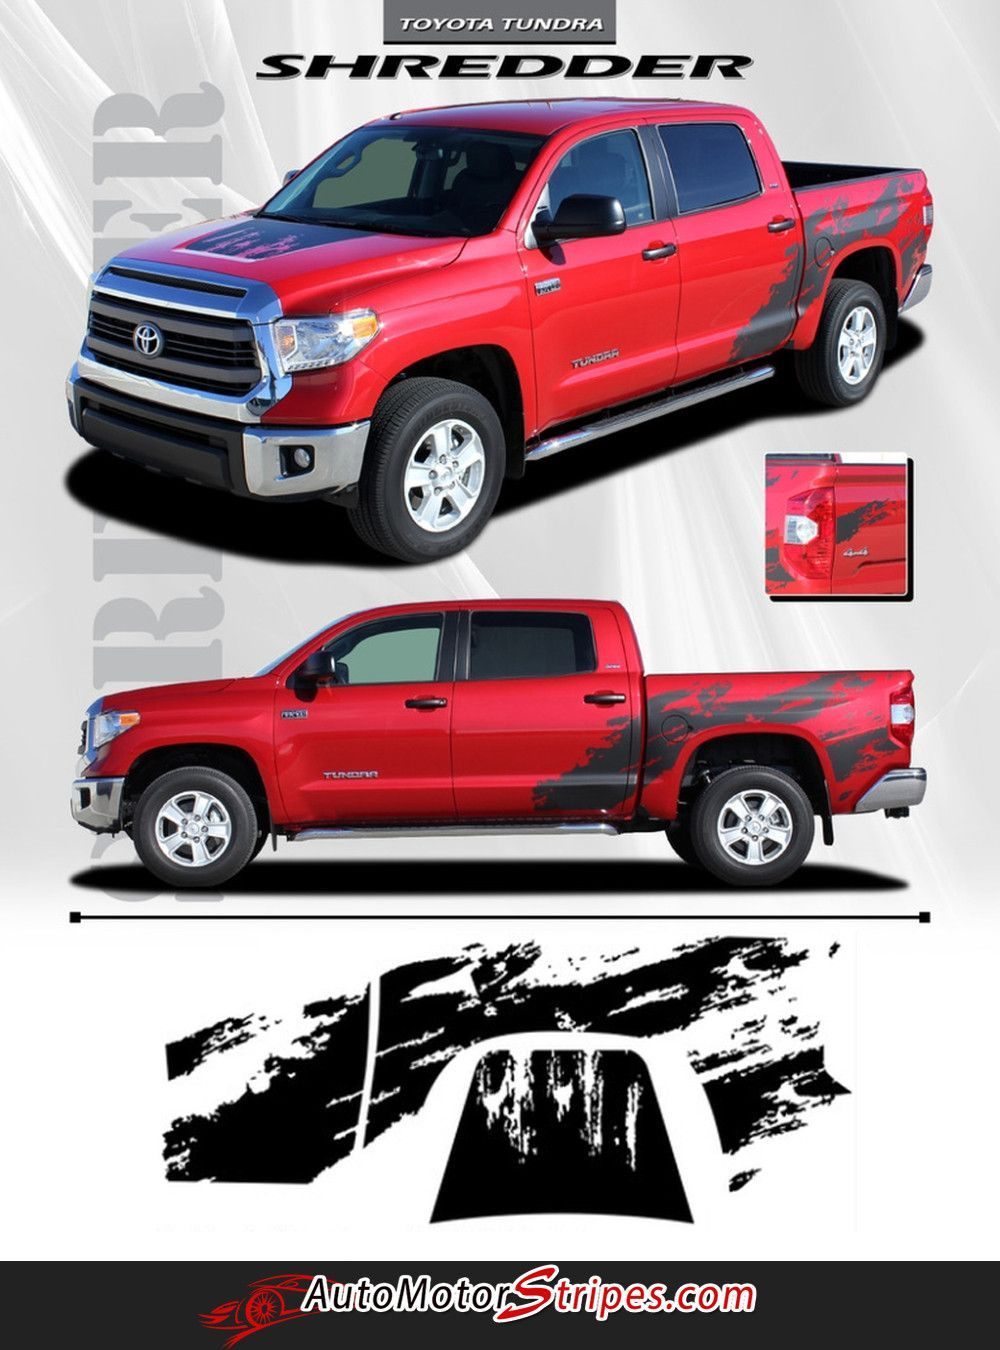 2014 2016 toyota tundra shredder hood and truck bed decal 3m vinyl graphics striping 3m kit